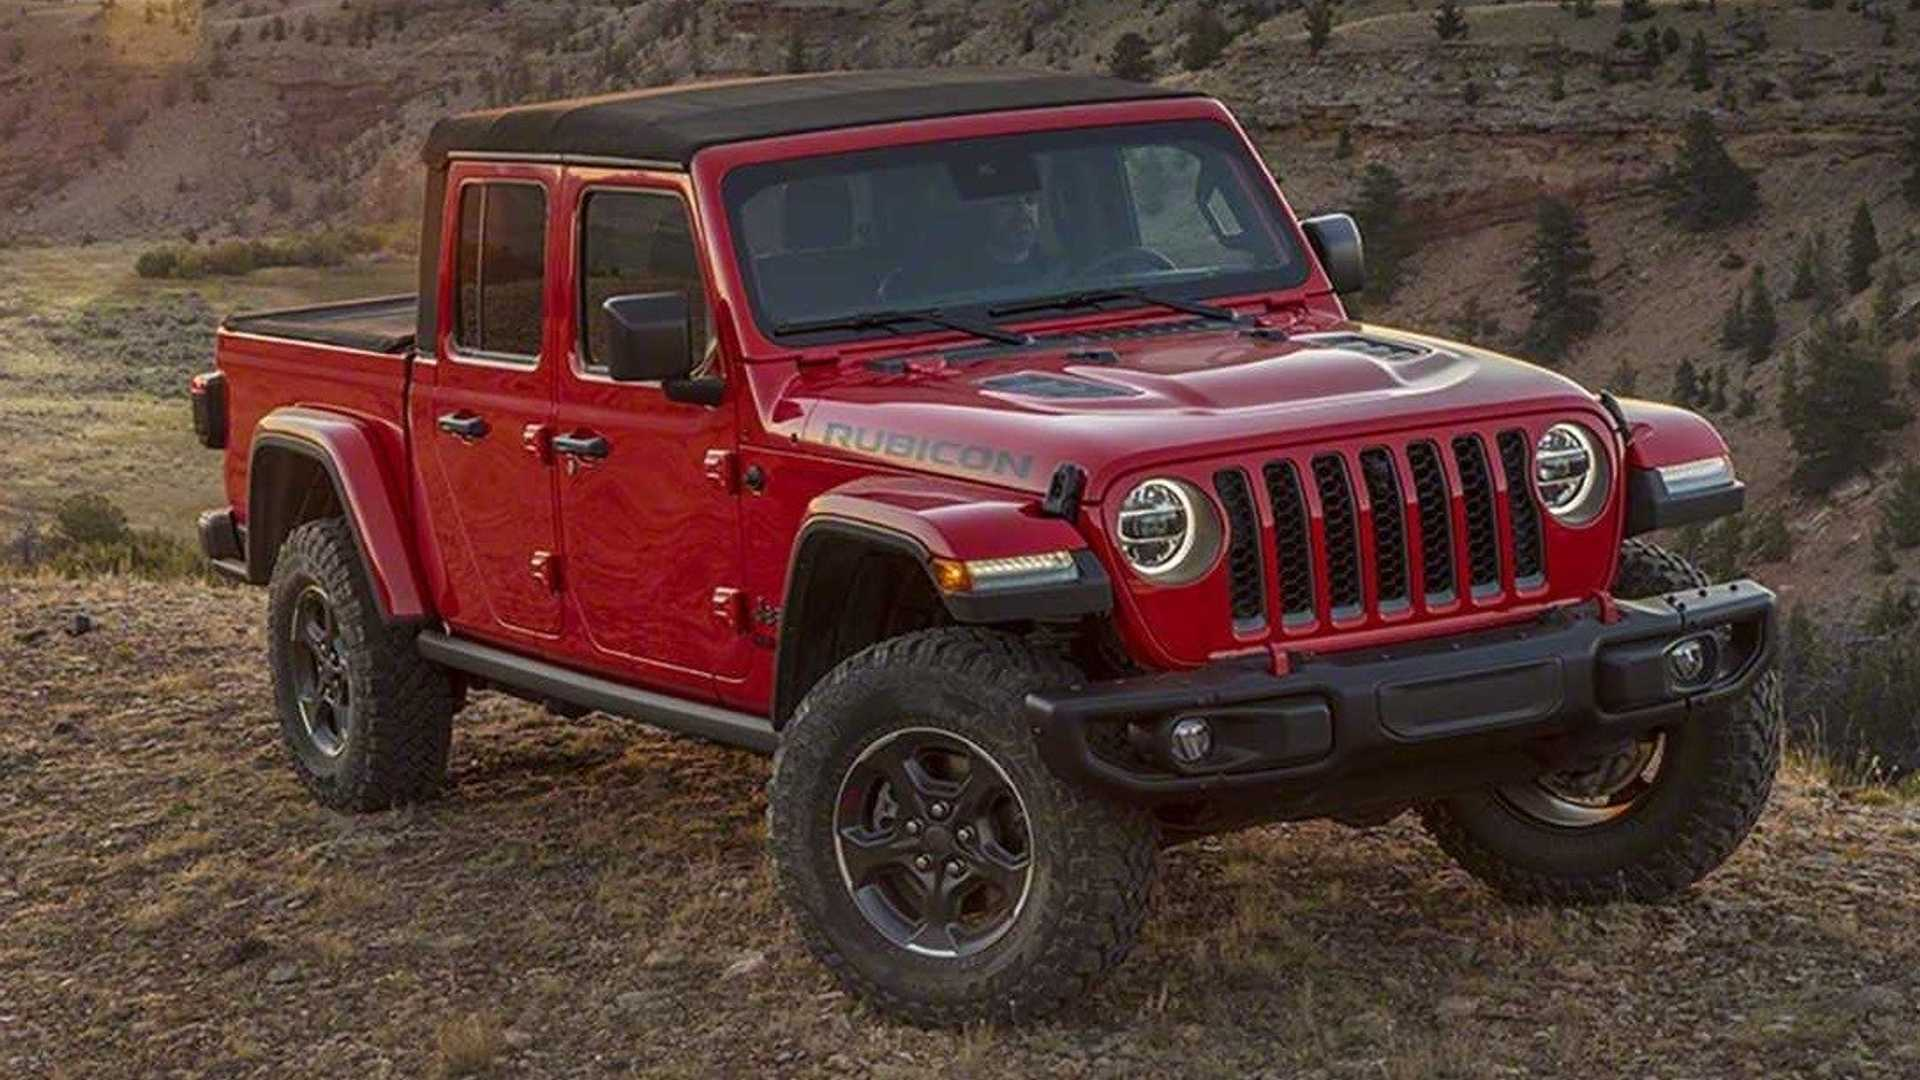 80 The Best 2020 Jeep Gladiator Hercules Photos